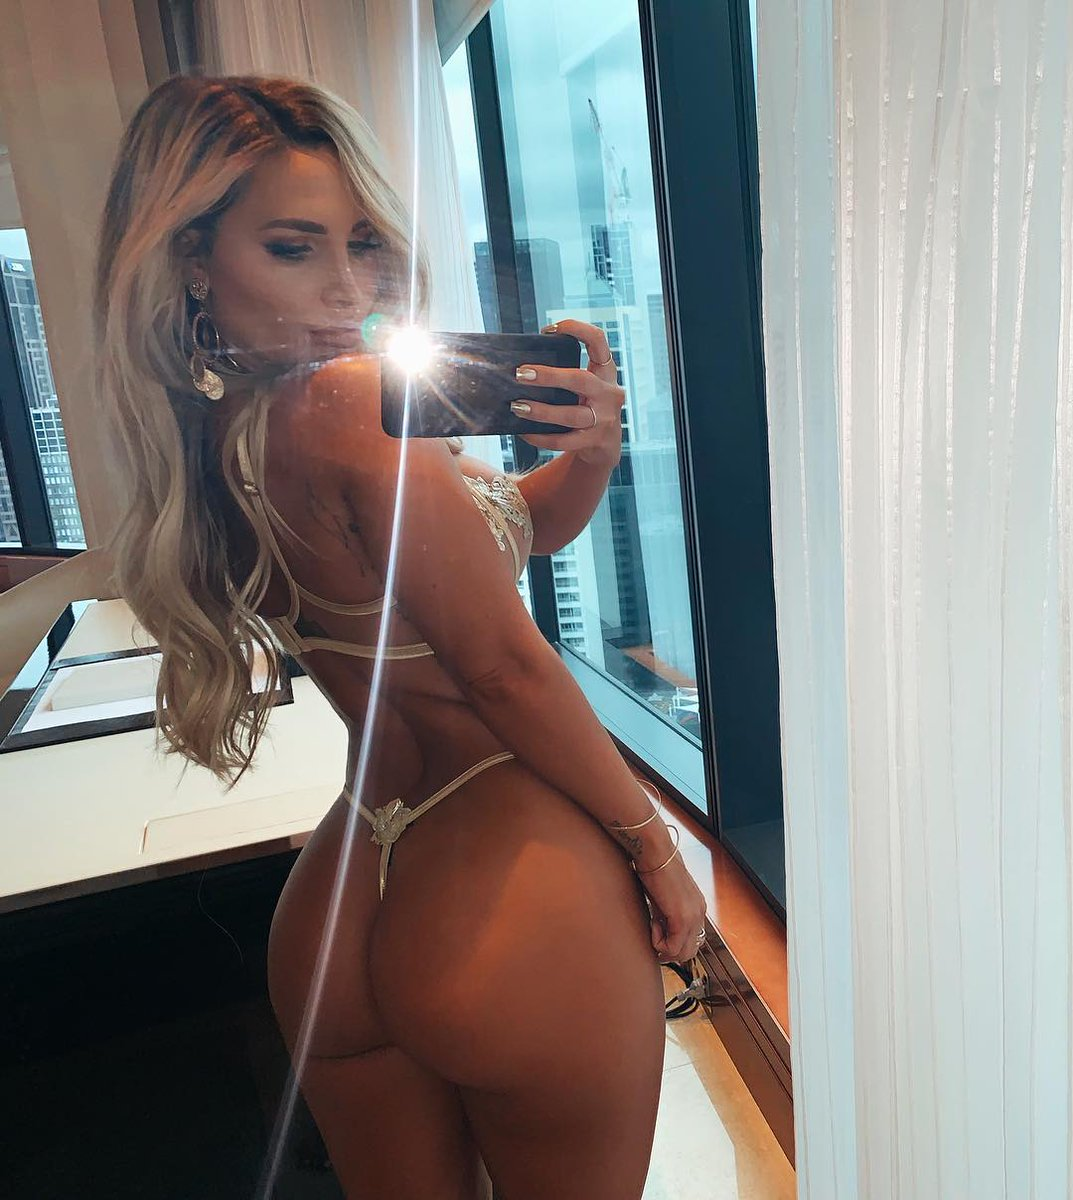 Young Rosanna Arkle nudes (89 foto and video), Tits, Fappening, Boobs, bra 2015